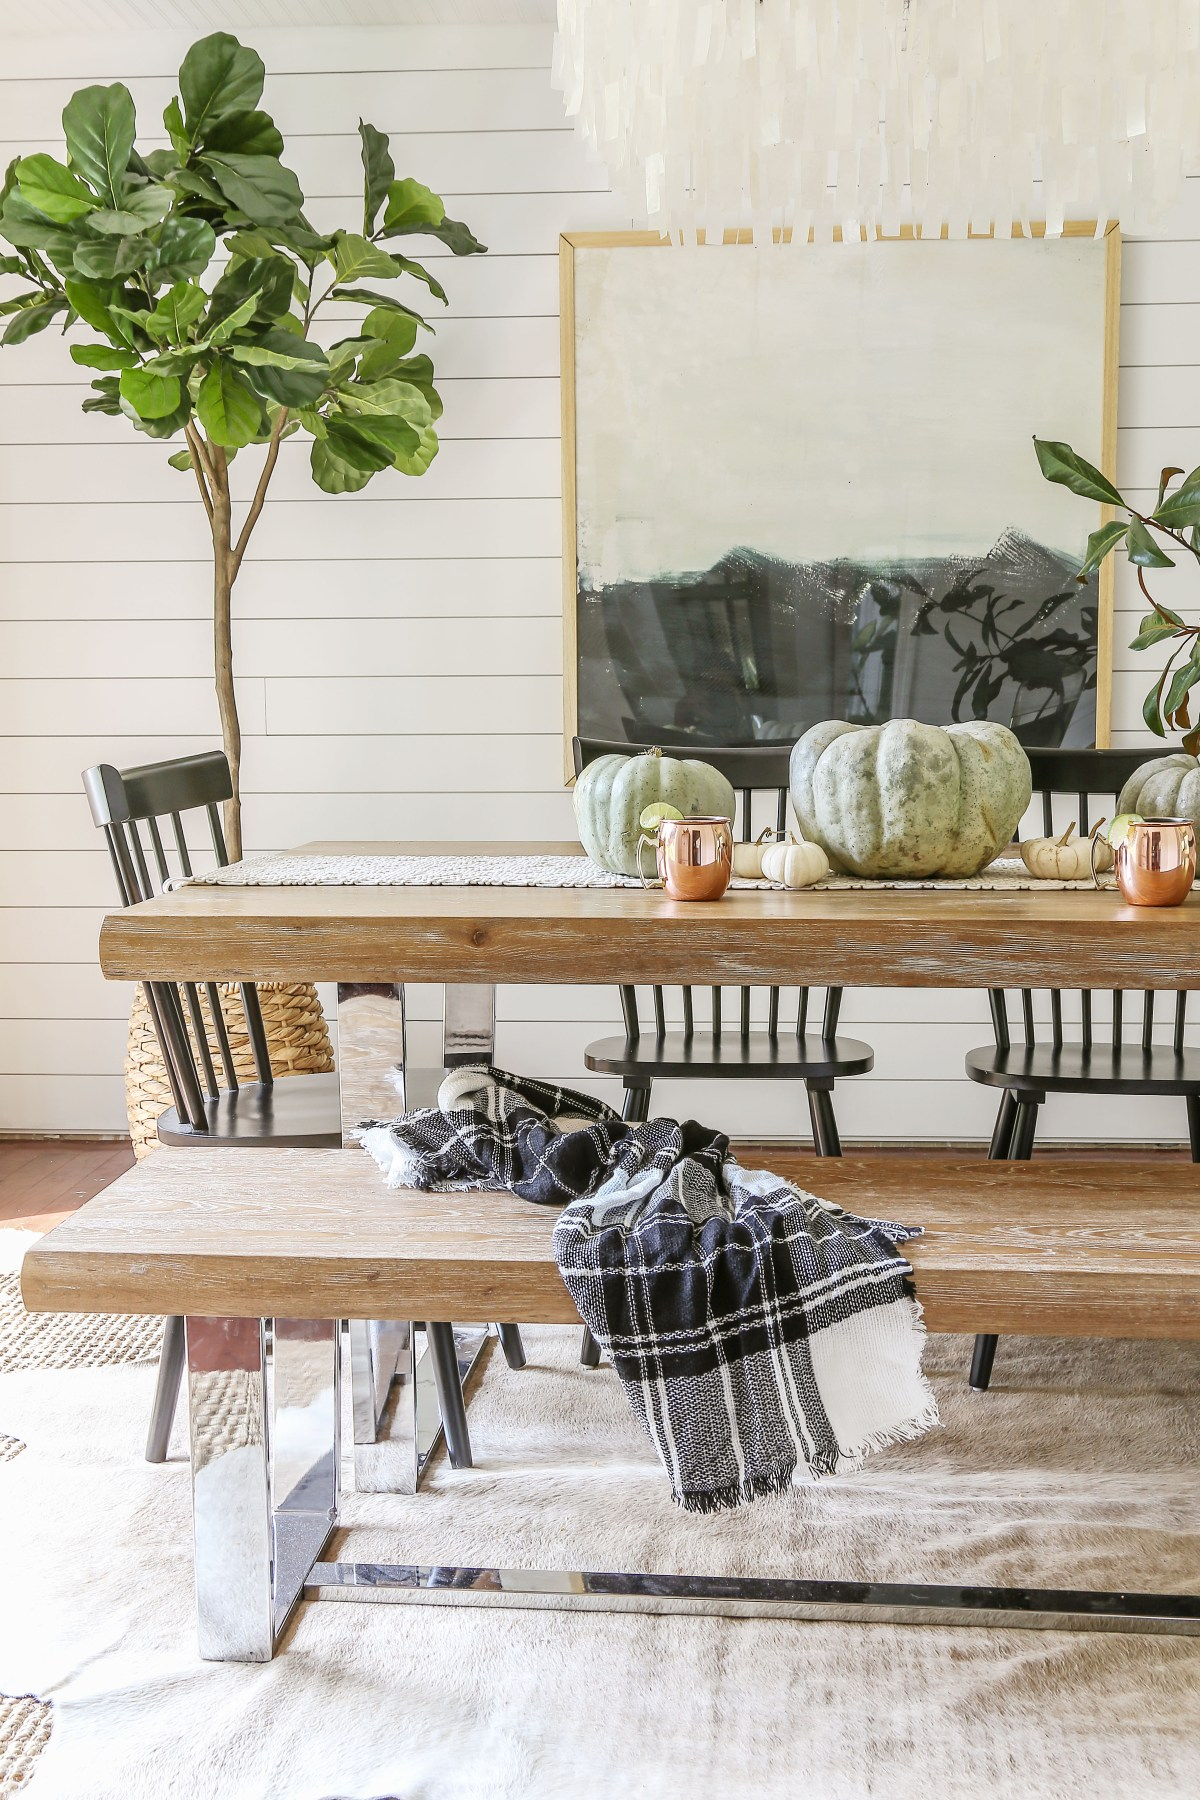 Affordable Modern Farmhouse Fall Decorating - Designing Vibes Fall Tour